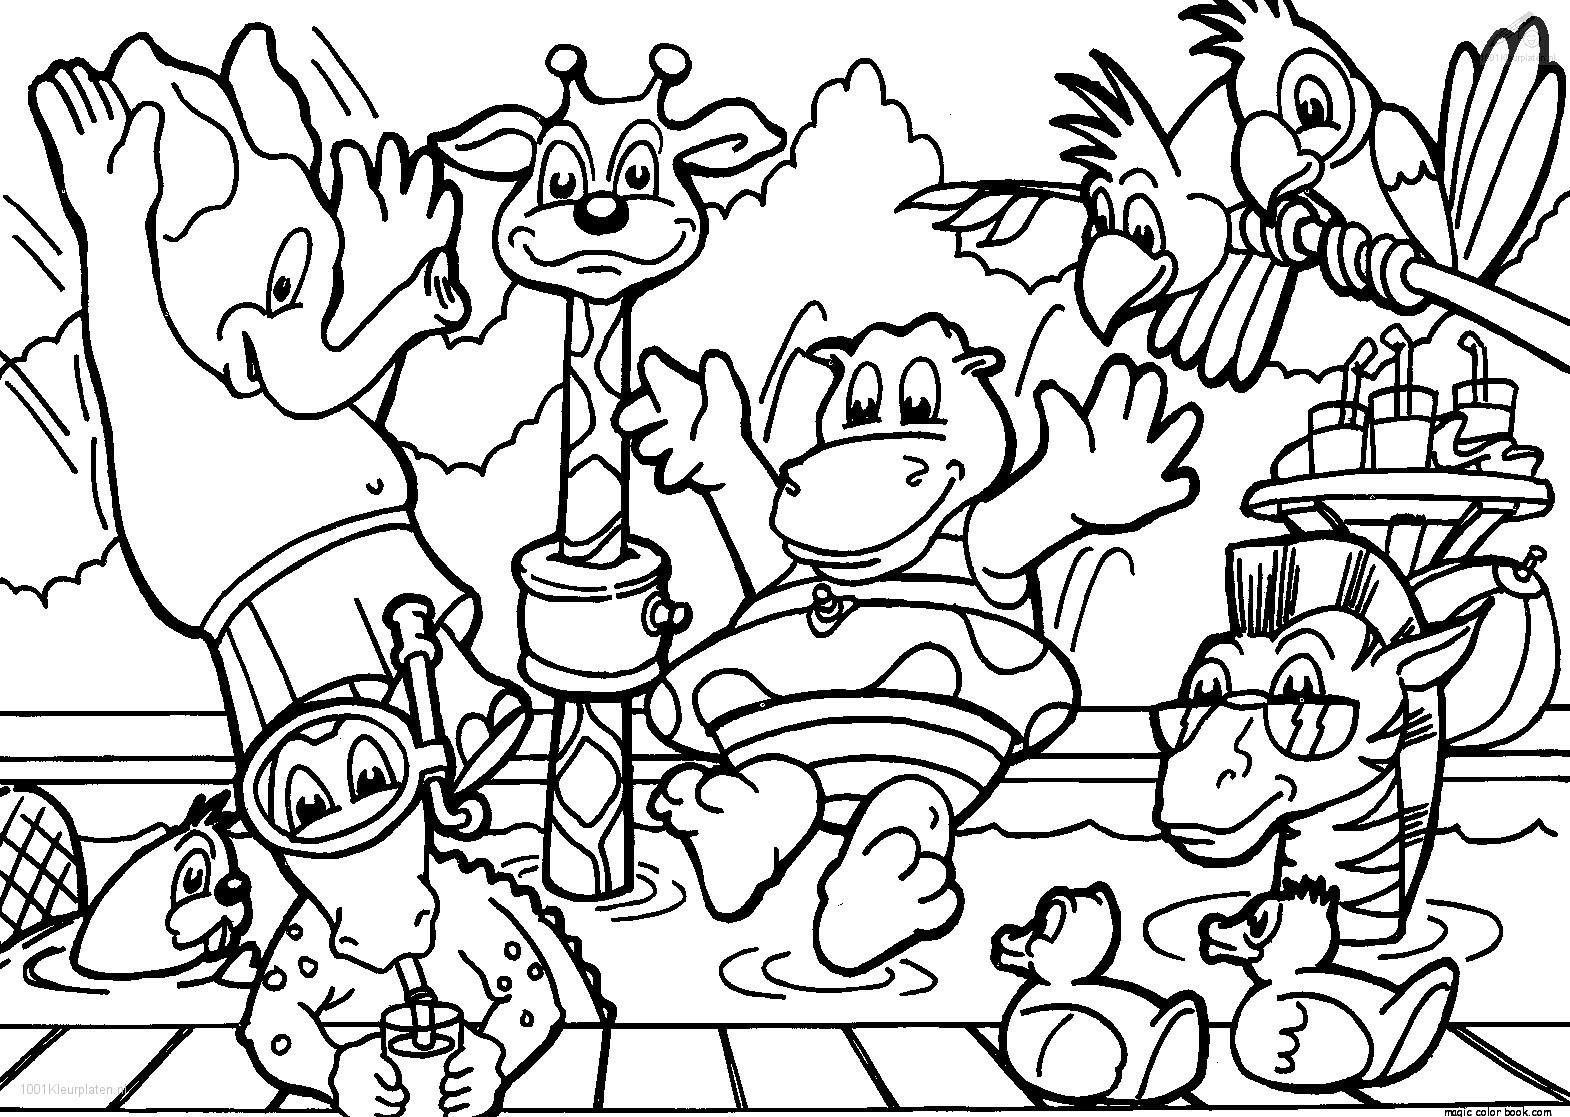 Colorings Co Zoo Animals Coloring Pages Coloring